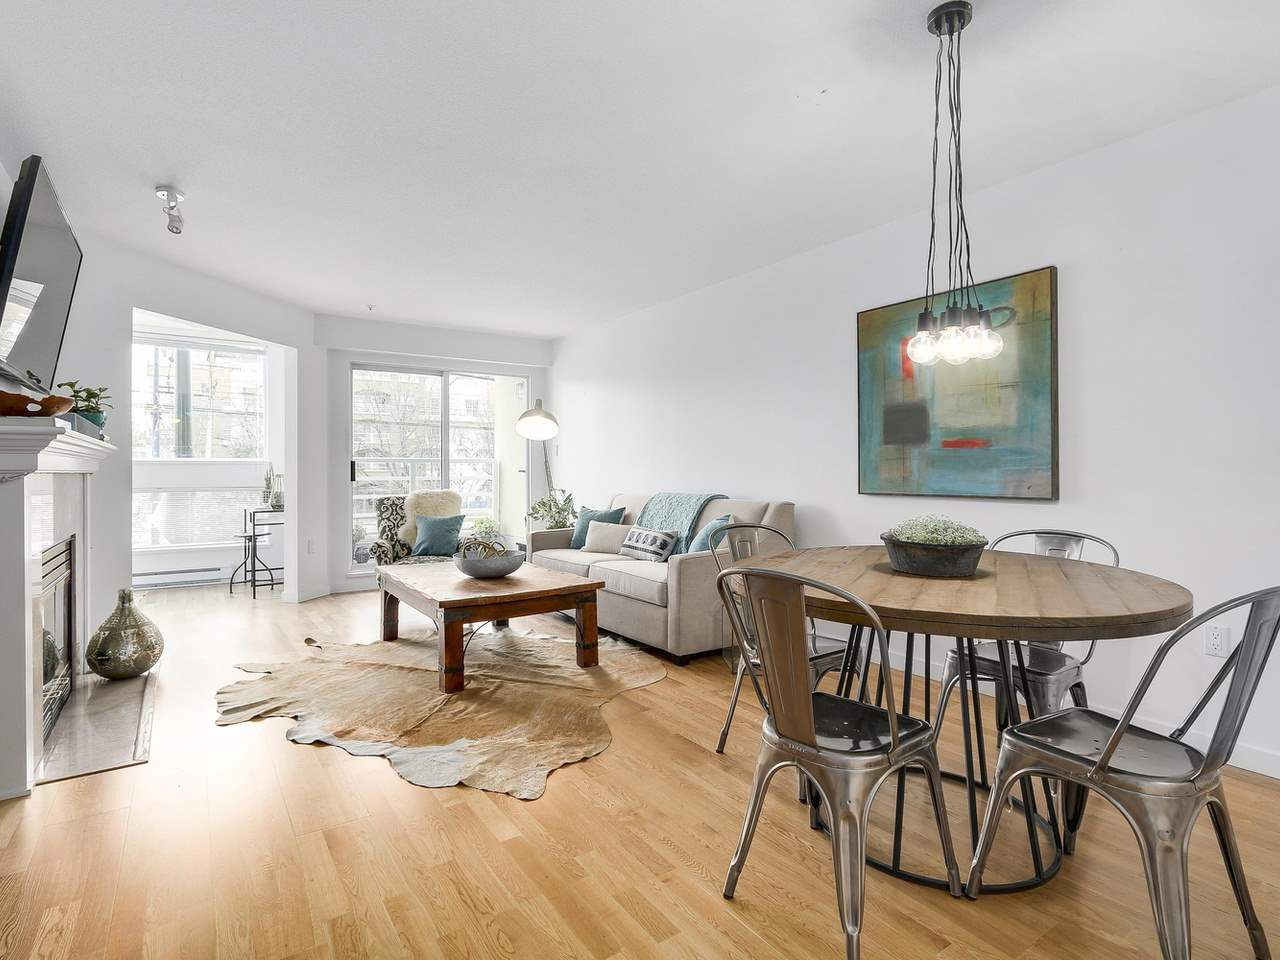 """Main Photo: 211 2105 W 42ND Avenue in Vancouver: Kerrisdale Condo for sale in """"THE BROWNSTONE"""" (Vancouver West)  : MLS®# R2151443"""